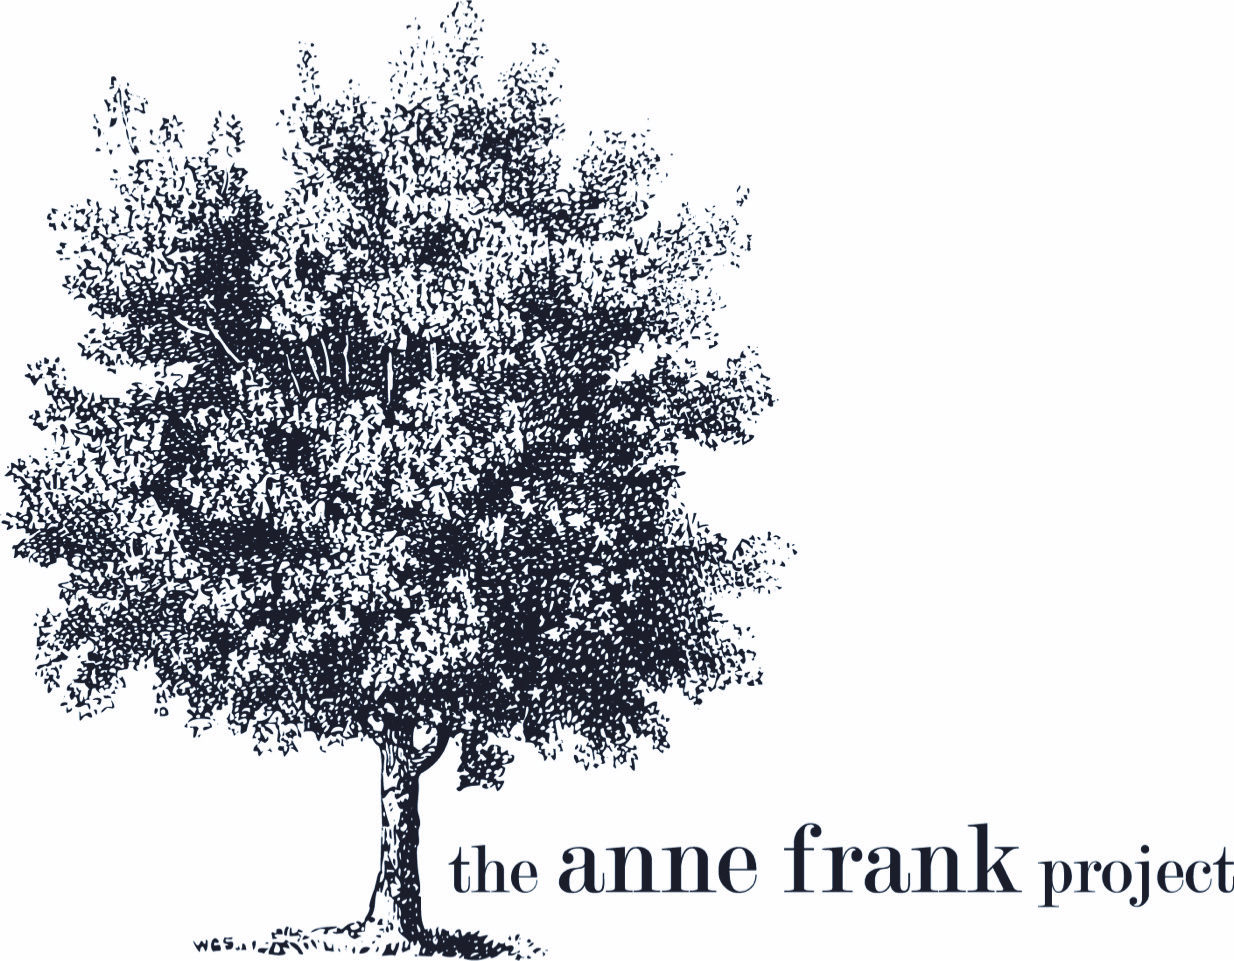 Improving the world one story at a time. - The Anne Frank Project uses storytelling as a vehicle for community building, conflict resolution, and identity exploration. Inspired by the wisdom of Anne Frank, AFP surfaces and shares stories stifled by oppression.